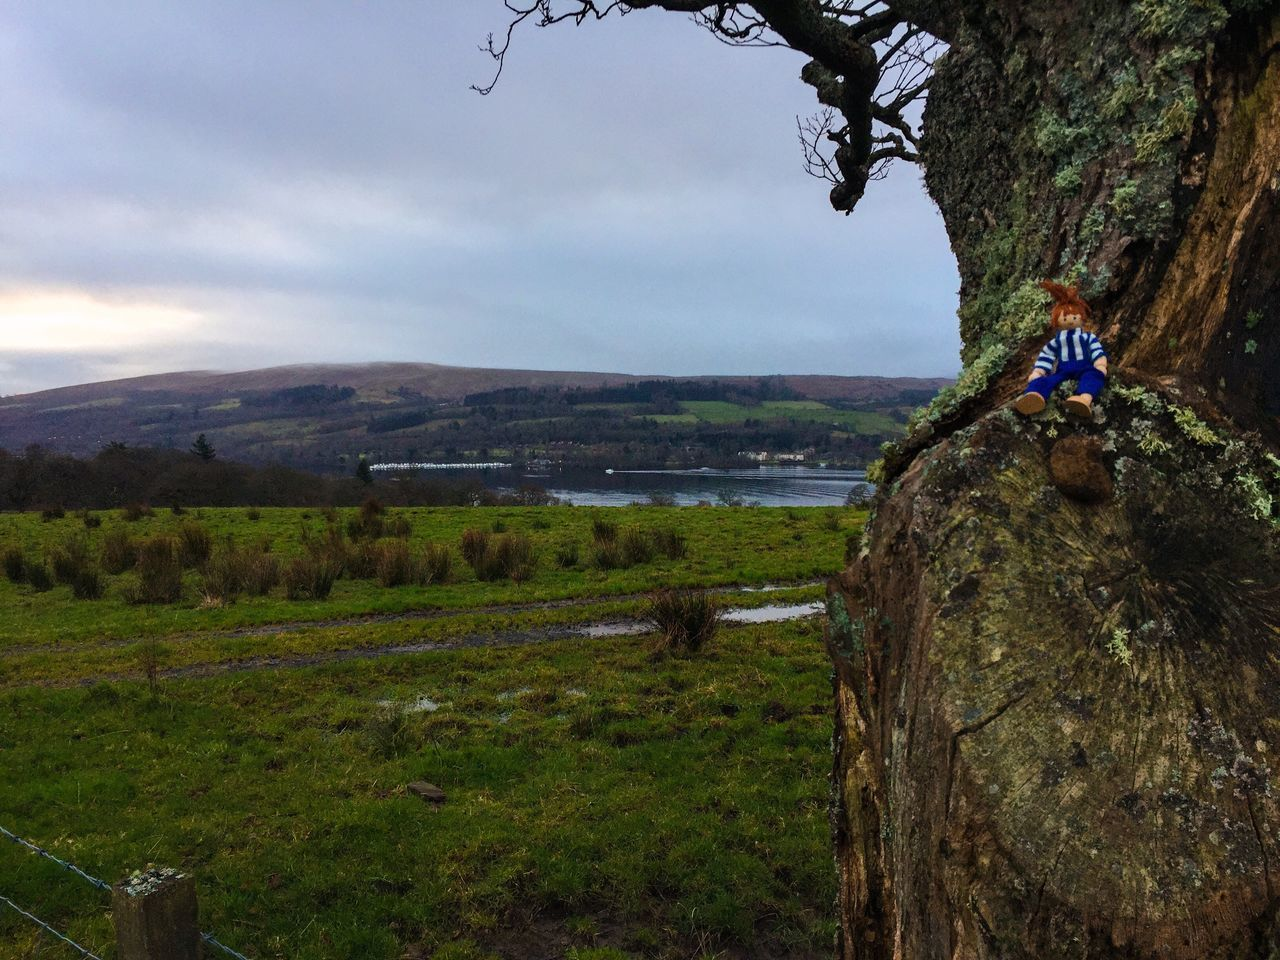 My boy climbing trees, needed a rest 😀 Horizon Over Land Water Mountains Today In Scotland Day Beauty In Nature Countryside Nature Scenics Landscape Tranquil Scene Tree Green Grassy MyBoy Fun Messing Around